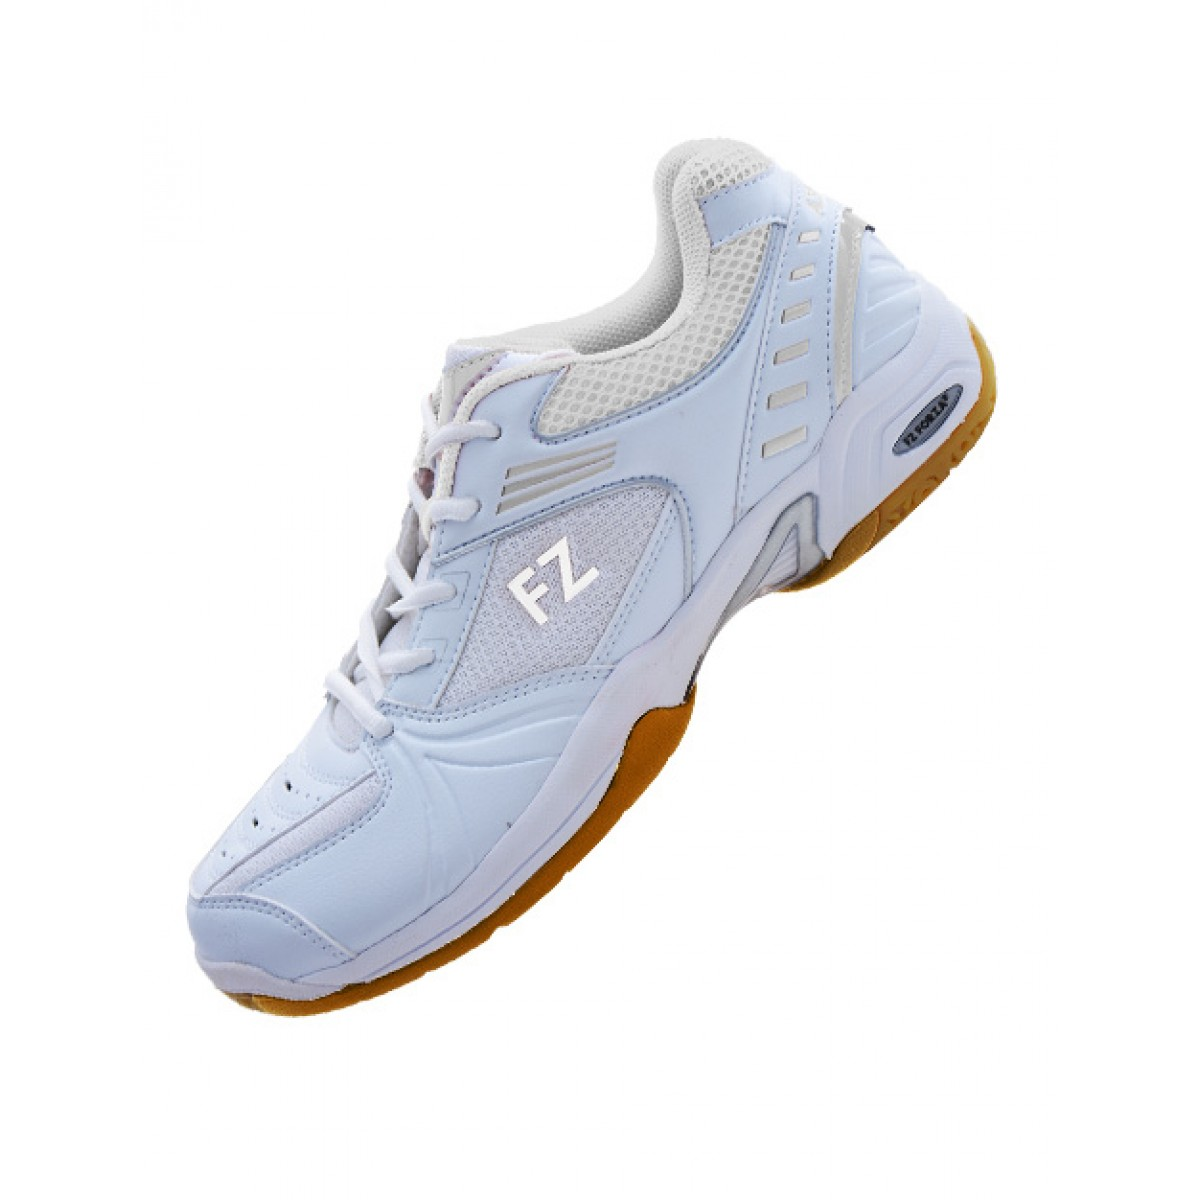 badminton-shoes-fierce-fzforza.jpg